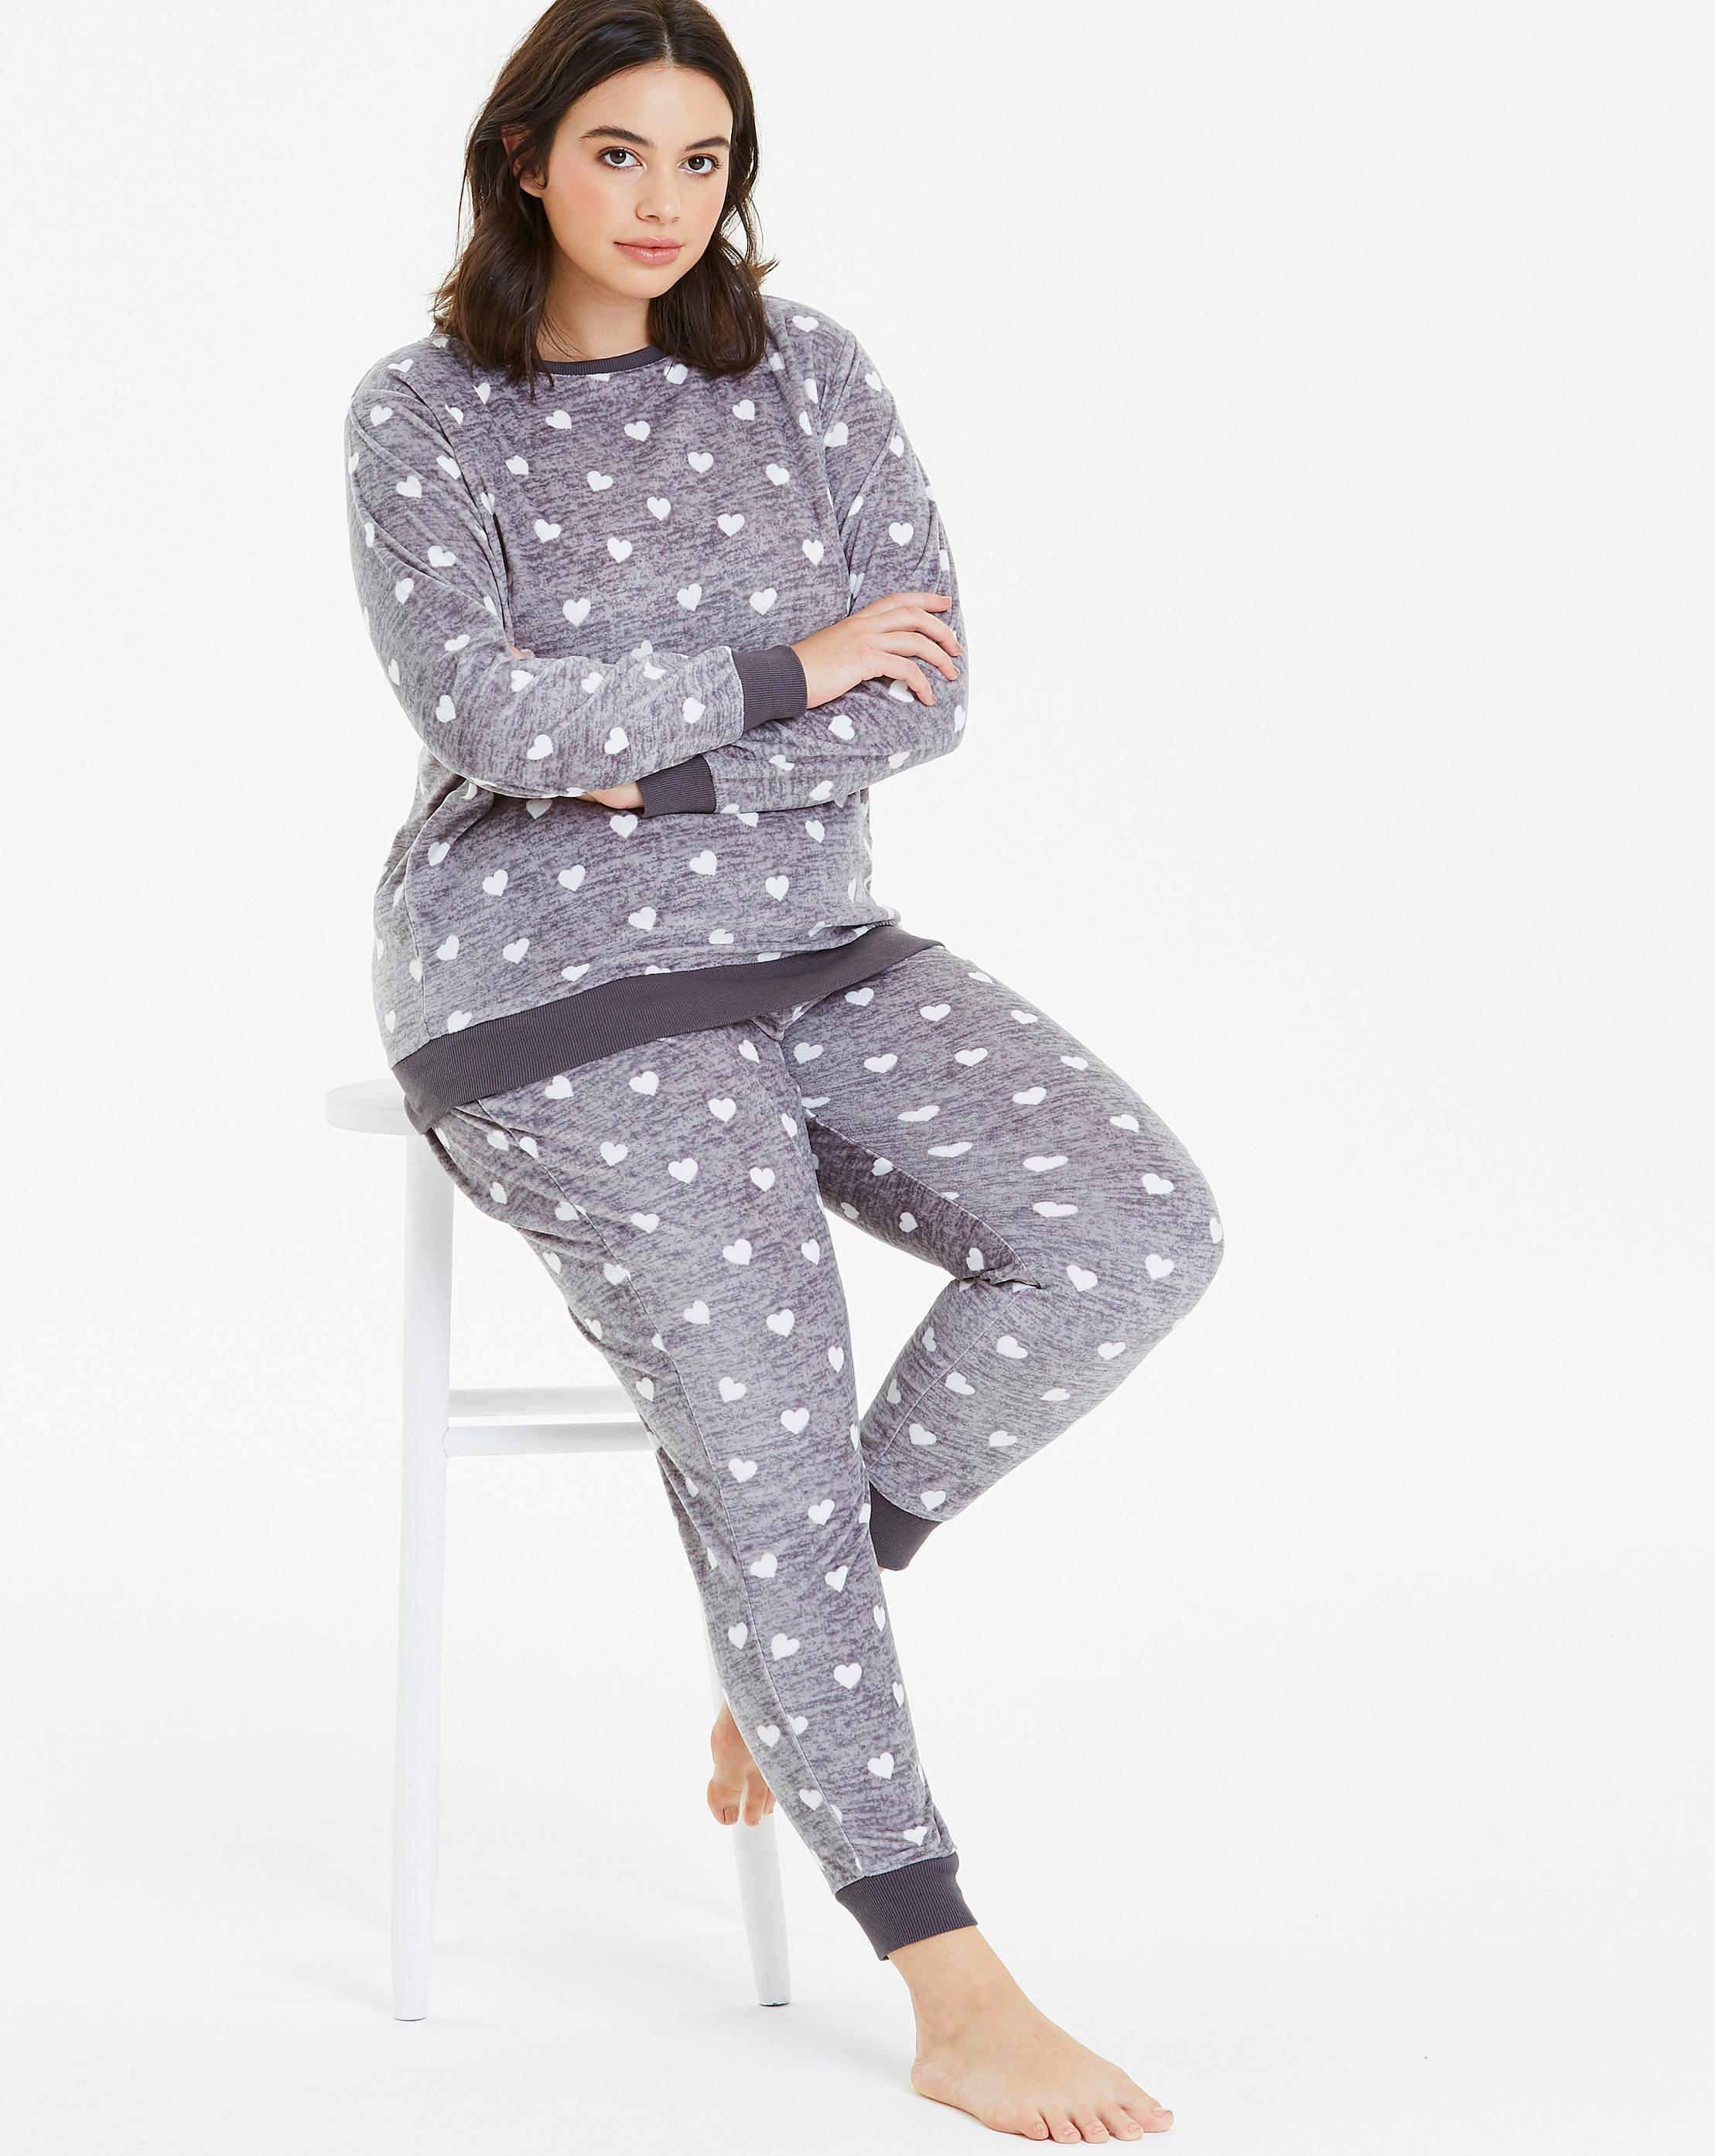 29acde3b5933 Lyst - Simply Be Pretty Secrets Heart Print Fleece Twosie in Gray